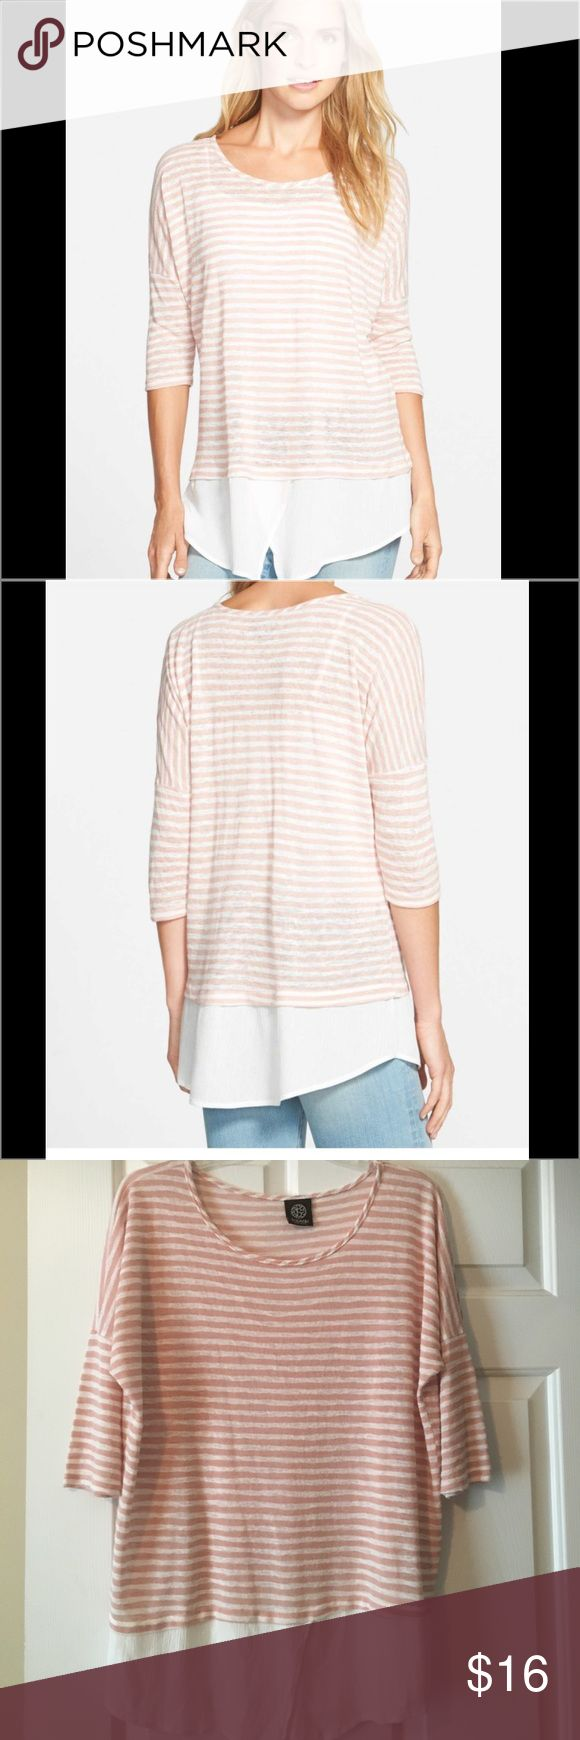 "Bobeau Layered Look Stripe Top EUC A lightweight woven inset forming a shirttail hem brings a pulled-together layered look to a striped knit top with slouchy drop-shoulder styling. 30"" length (size Medium). Scooped neck. Three-quarter sleeves. 62% rayon, 38% polyester with 100% rayon contrast. By Bobeau; made in the USA. bobeau Tops"